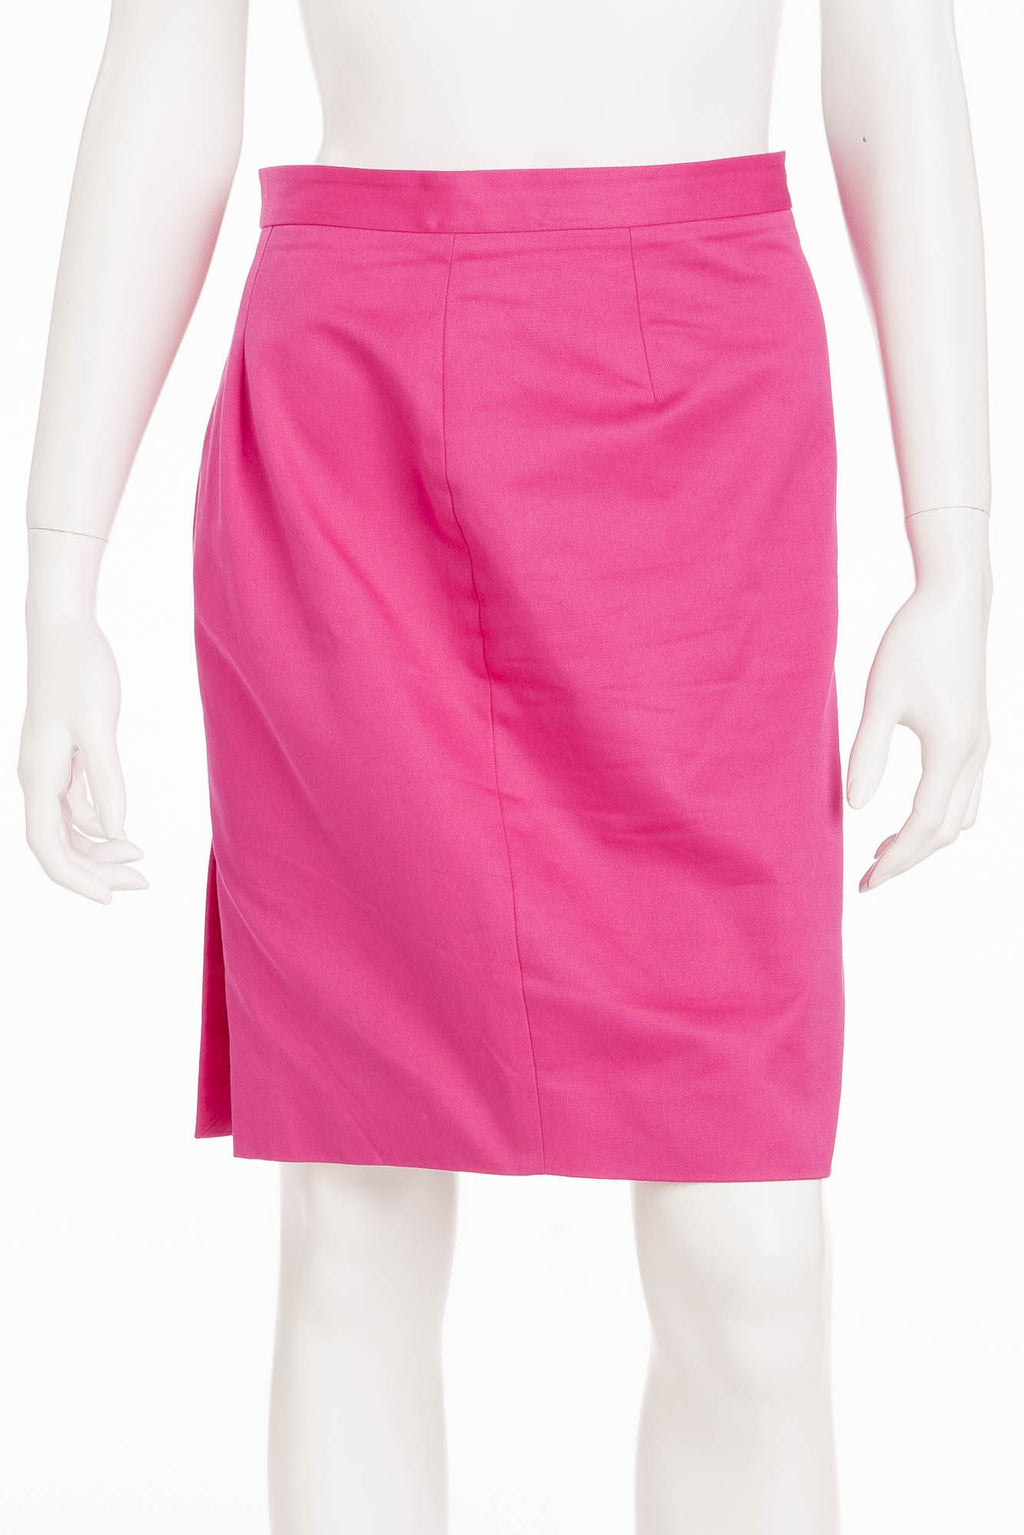 Dsquared2 - Hot Pink Pencil Skirt - IT 42